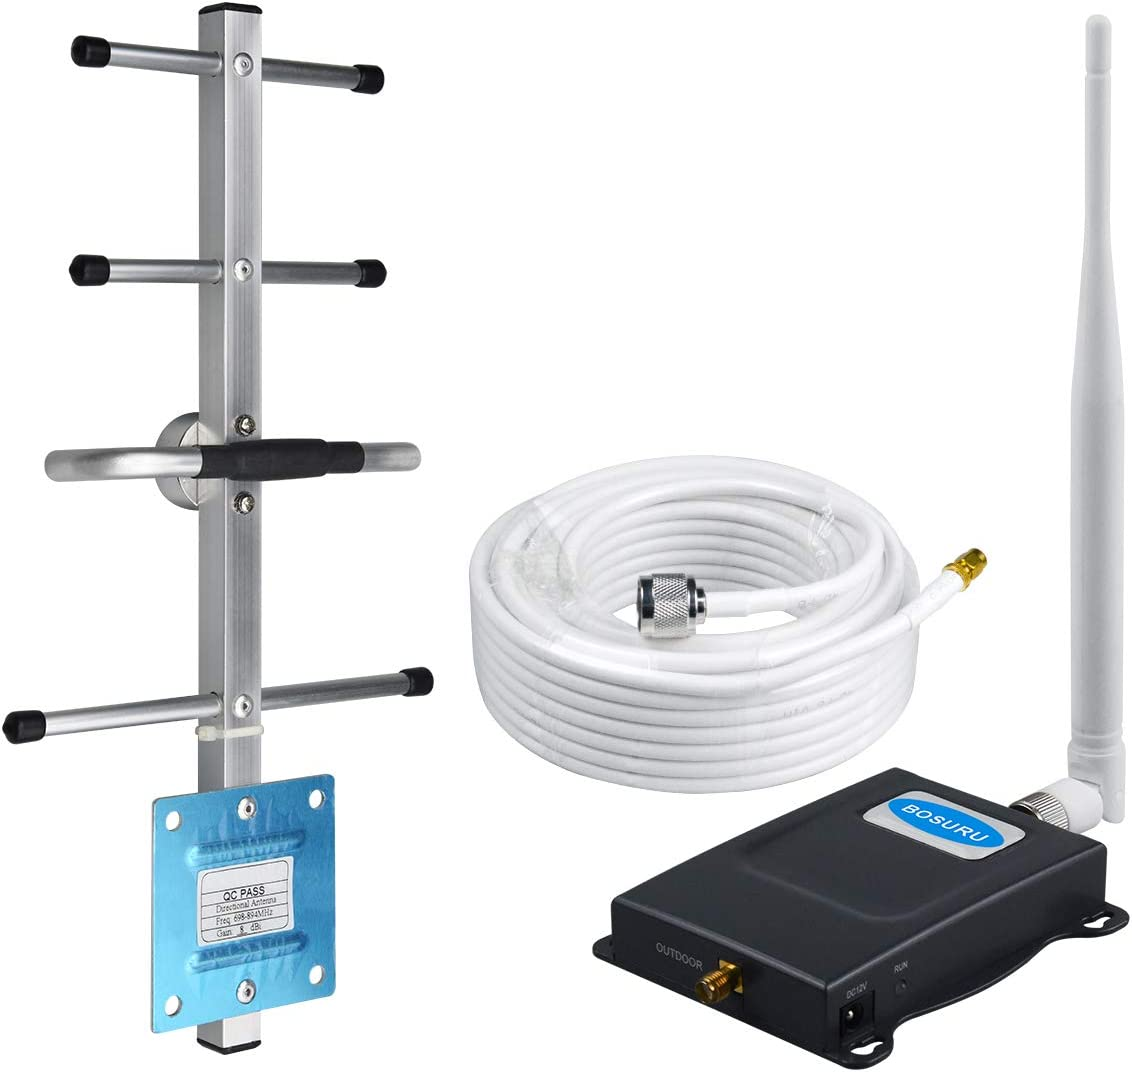 Cell Phone Signal Booster Verizon Signal Booster 4G LTE Band 13 Cell Phone Booster Verizon Cell Signal Booster Verizon Cell Booster Repeater Signal Amplifier Kit Home Cell Extender Boost Voice+Data